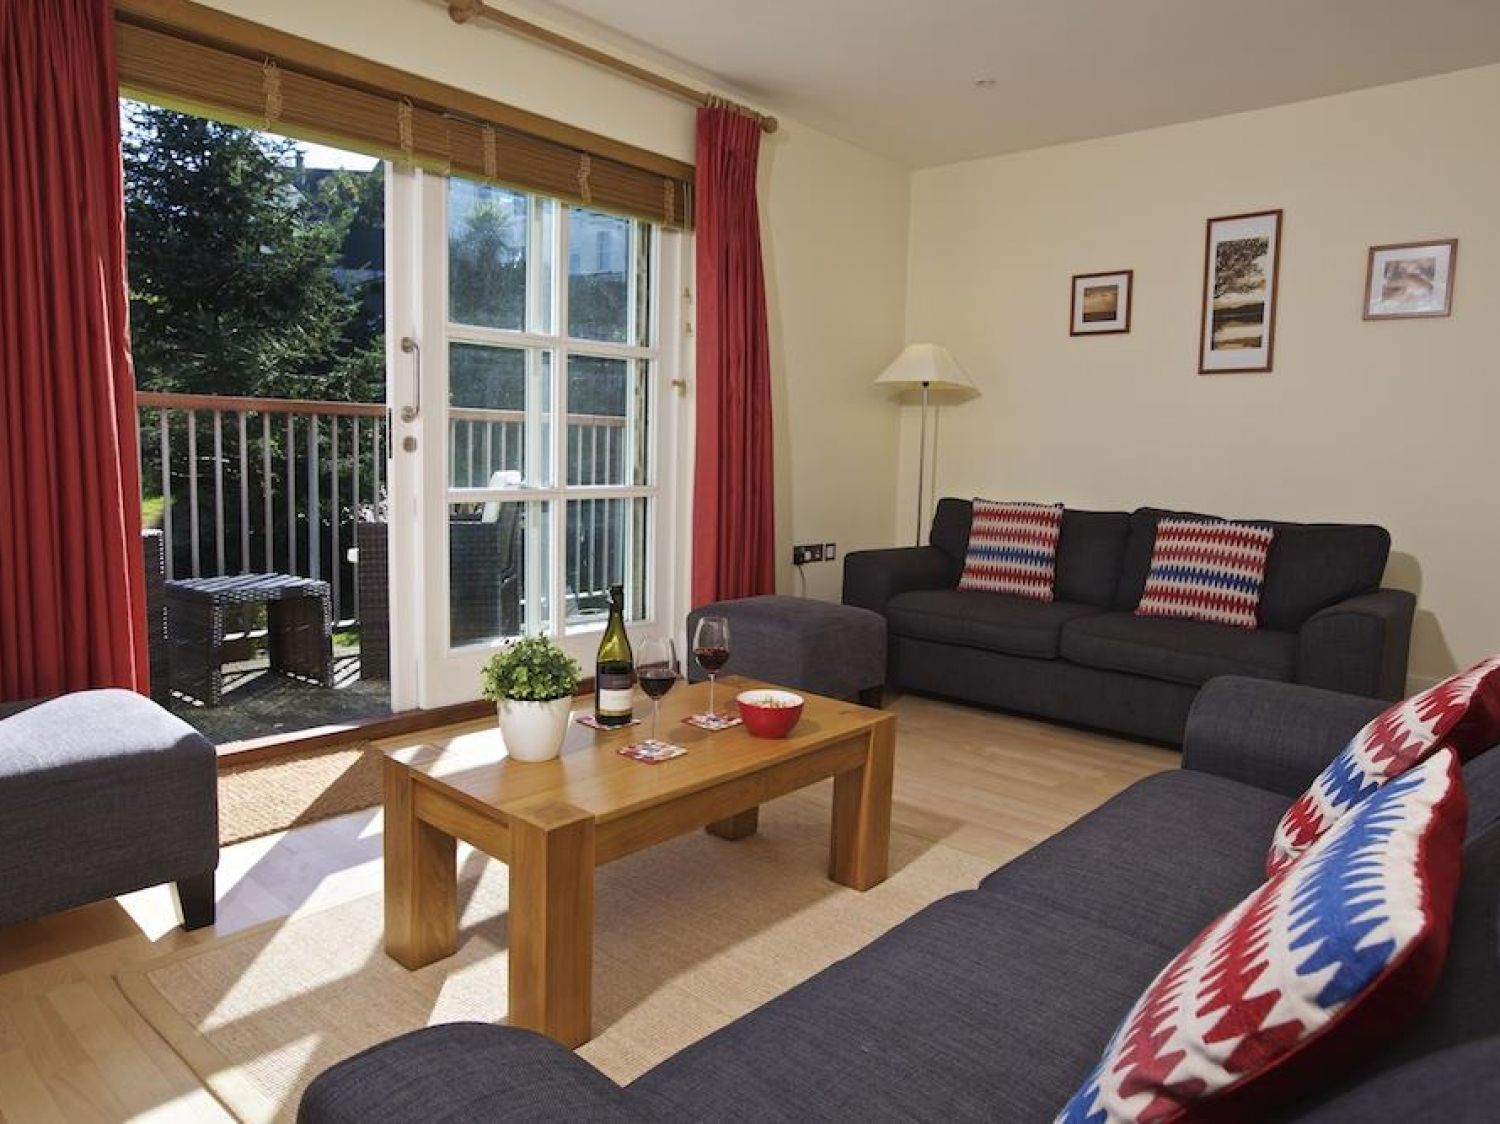 1 Combehaven - Devon - 994841 - photo 1